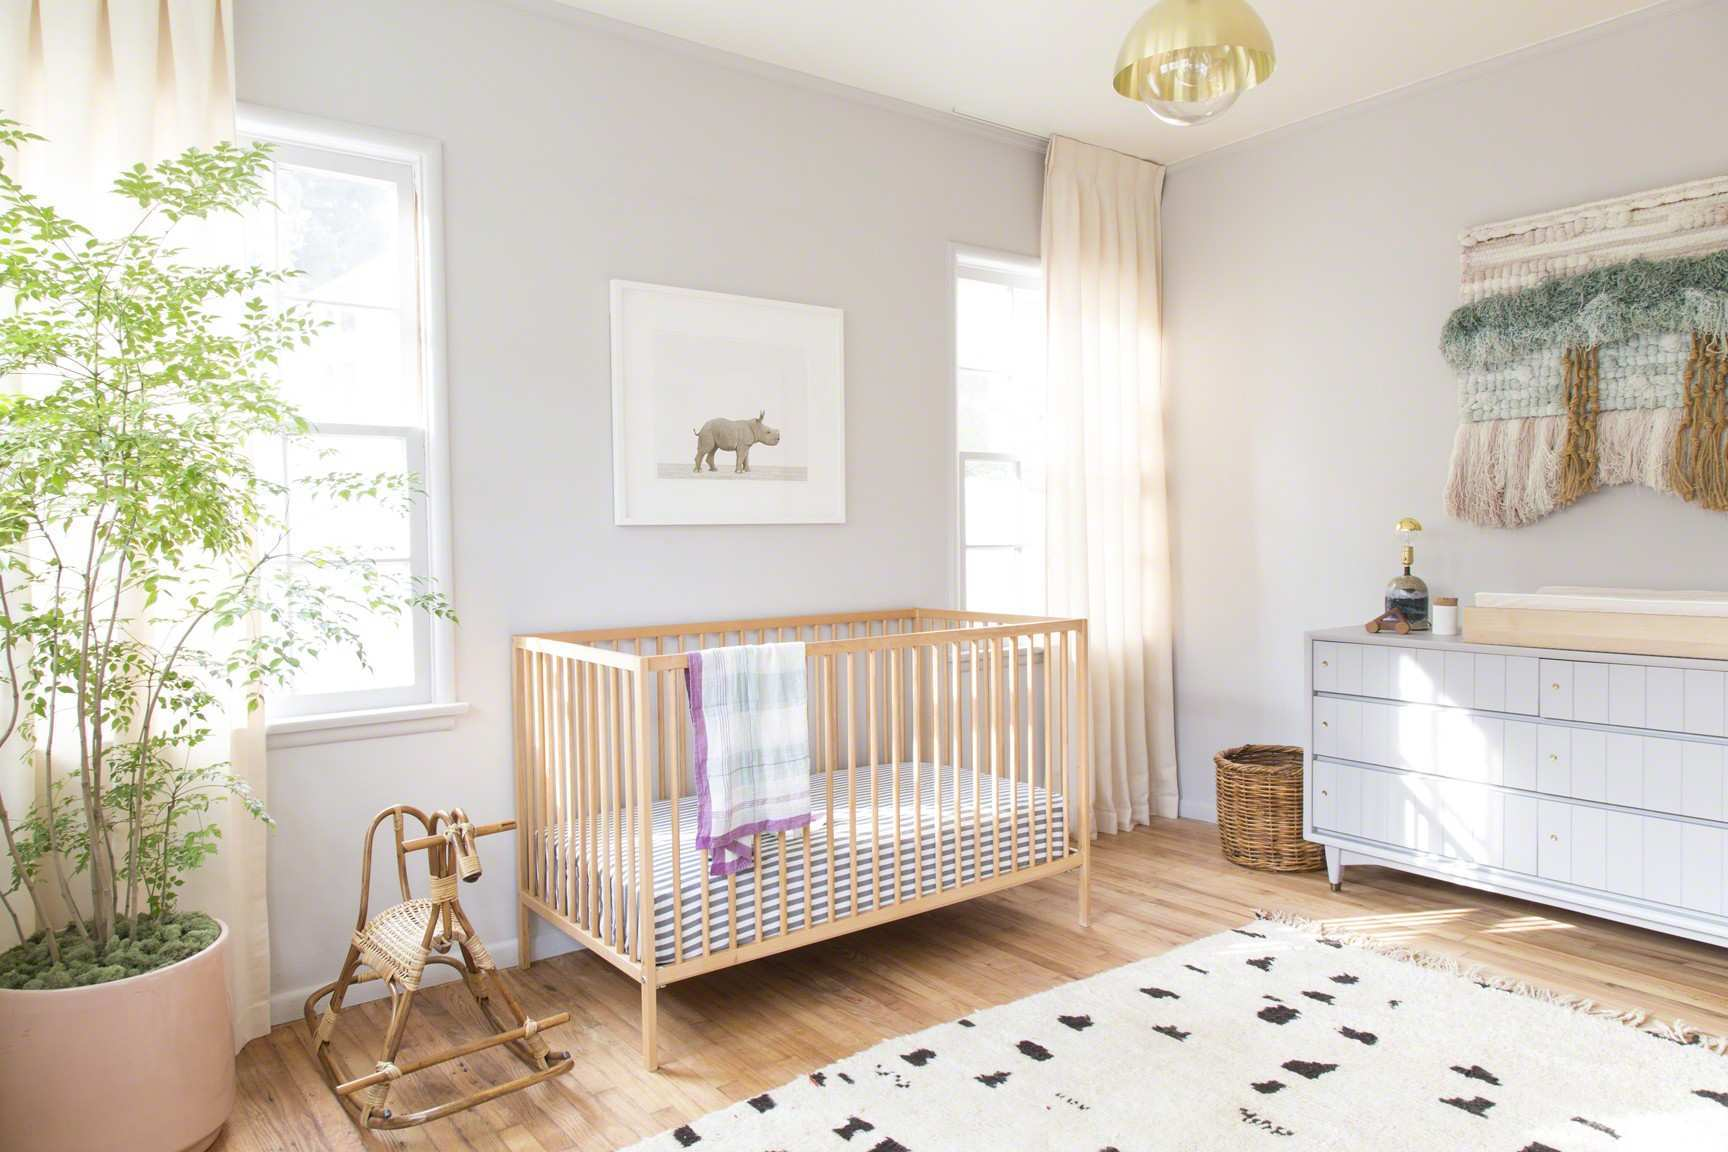 Sophisticated Art for Baby s Nursery Shop our charming collection